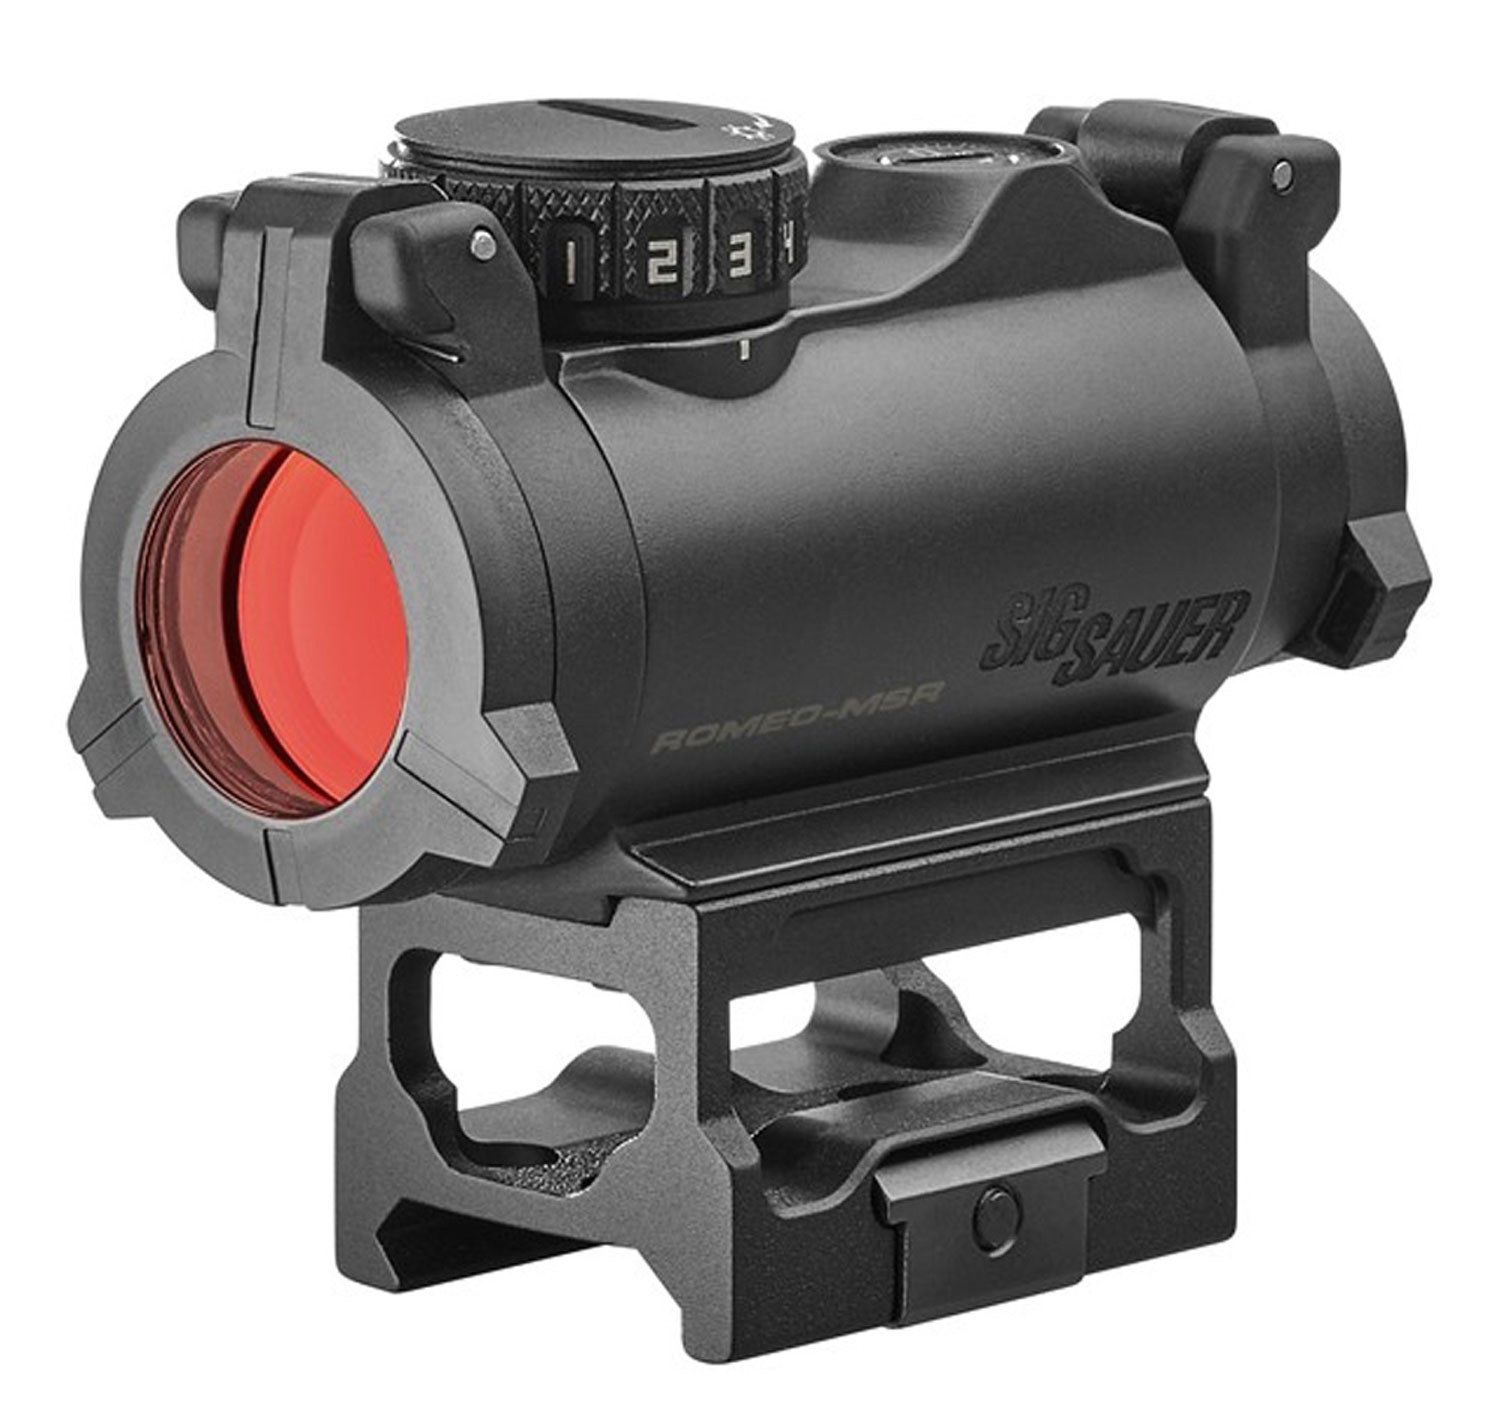 ROMEO MSR 1X20 MINI RFLX RED - COMPACT RED DOT | 2MOA | BLACK